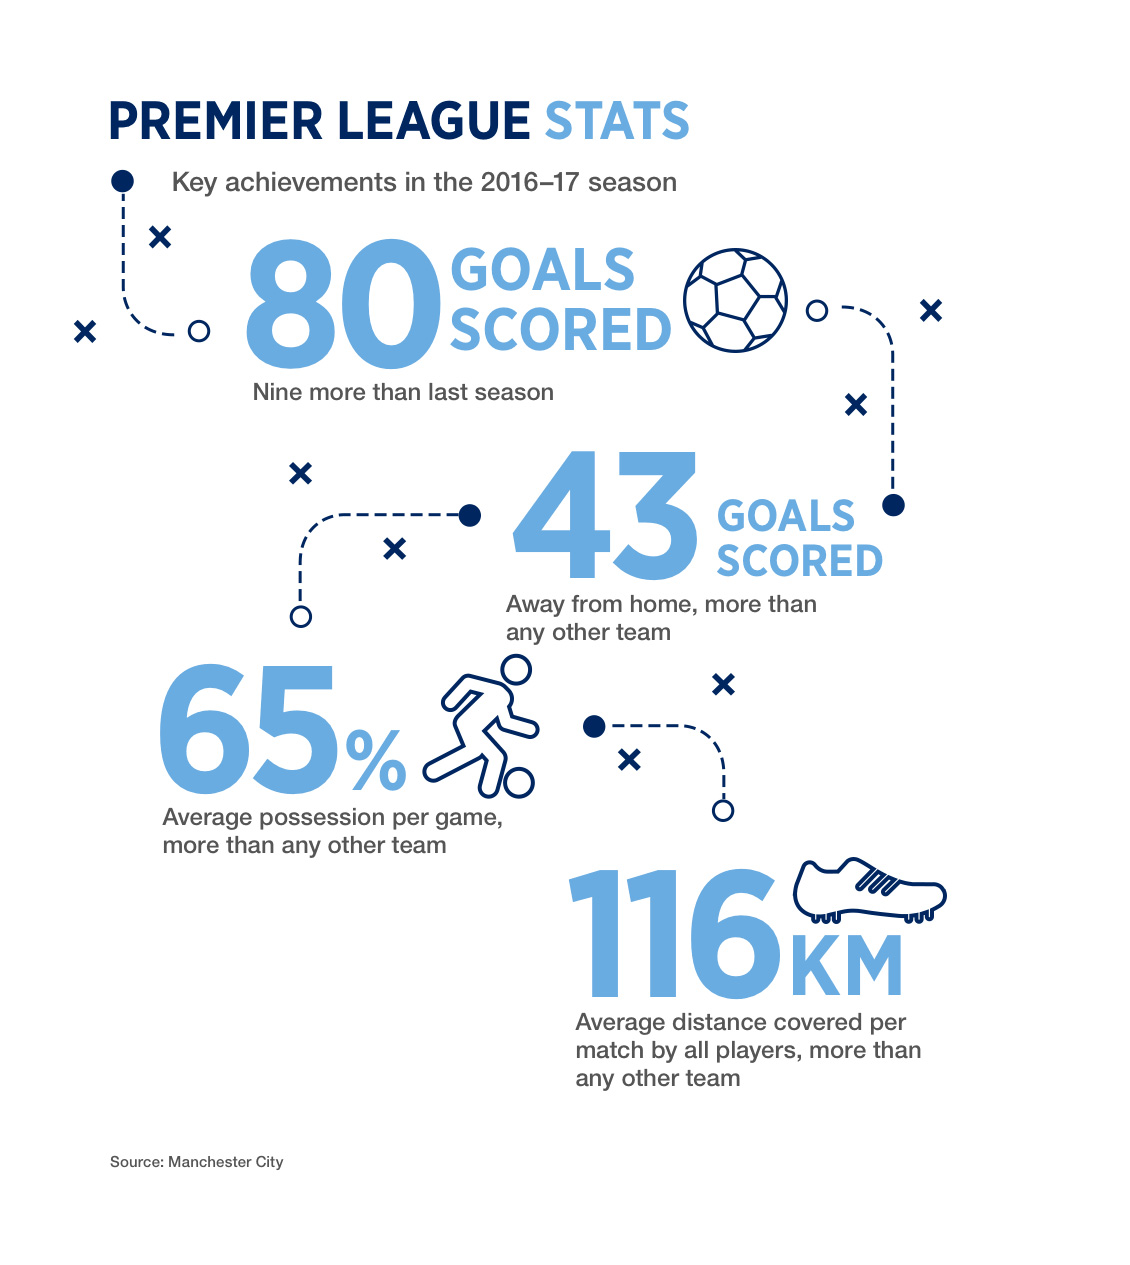 Manchester City's Premier League performance